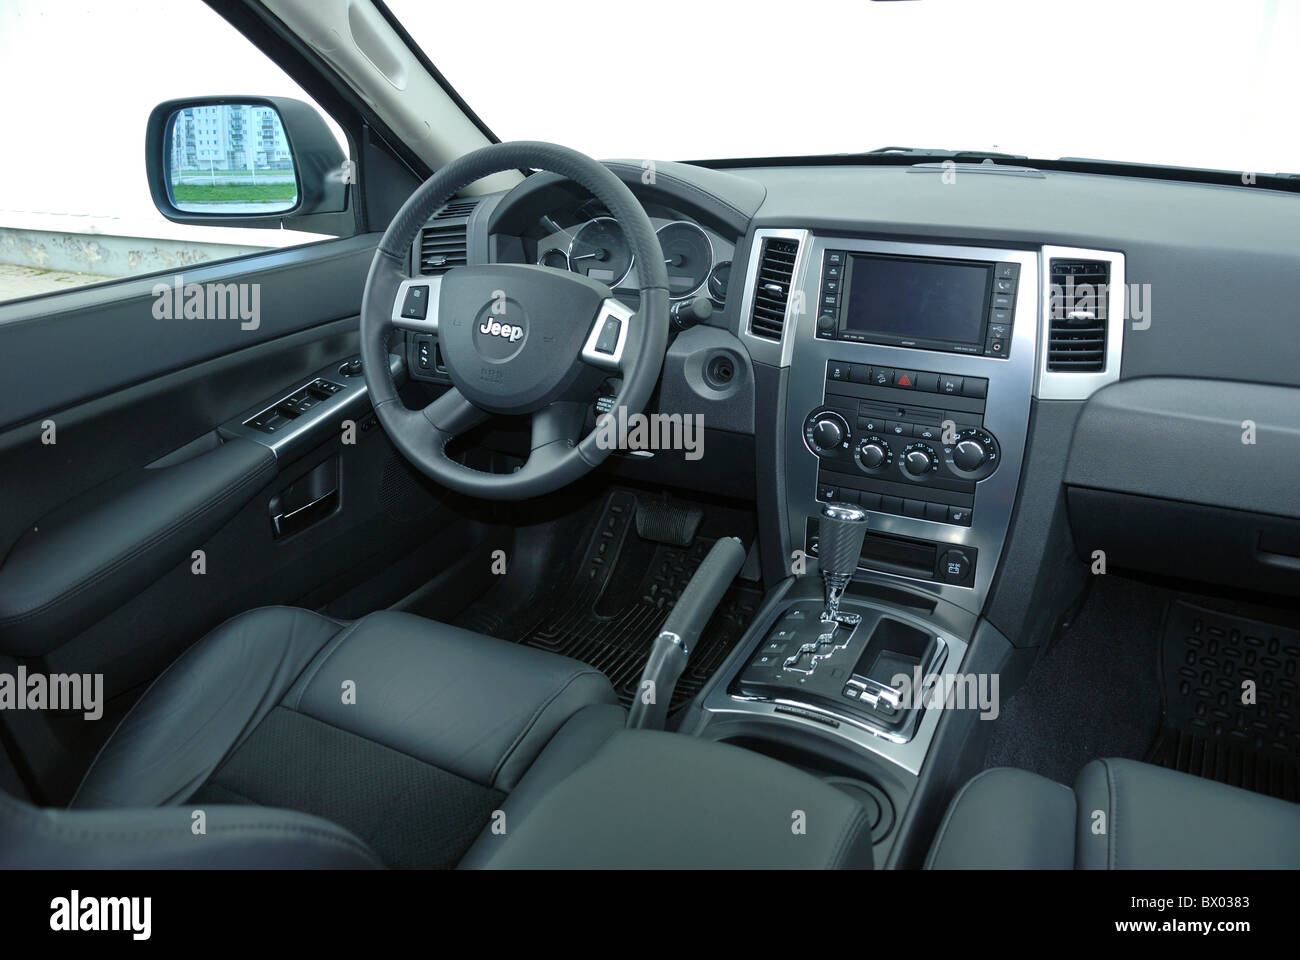 jeep grand cherokee 3 0 crd my 2005 wk us popular large stock photo royalty free image. Black Bedroom Furniture Sets. Home Design Ideas